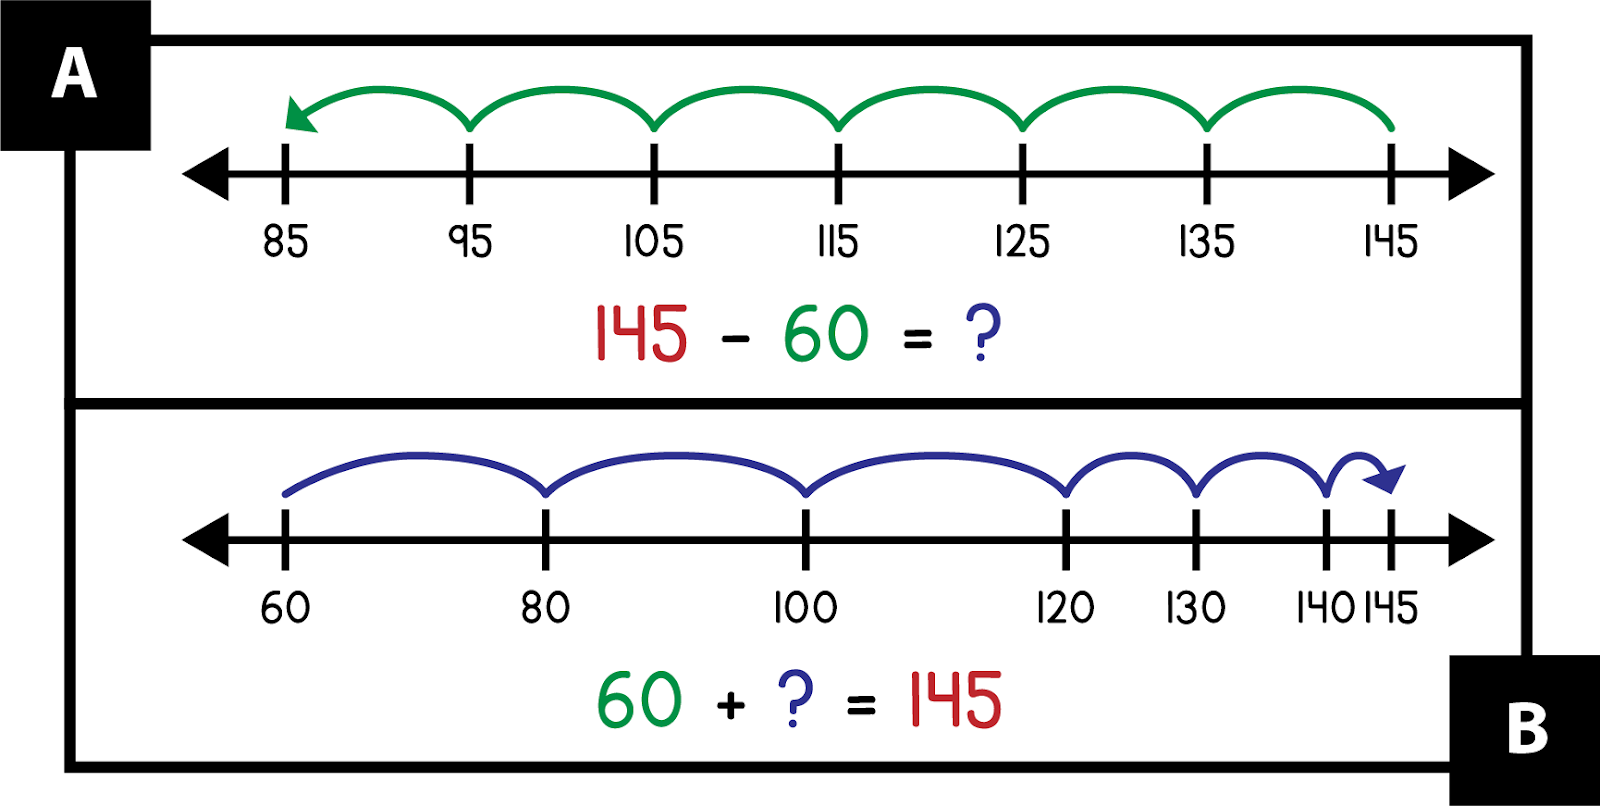 A: A number line shows jumping by 10s back from 145 to 85. Red 145 minus green 60 equals blue question mark. B: A number line shows jumping by 20s from 60 to 120, then jumping by 10s to 140, then jumping by five to 145. Green 60 + blue question mark = red 145.